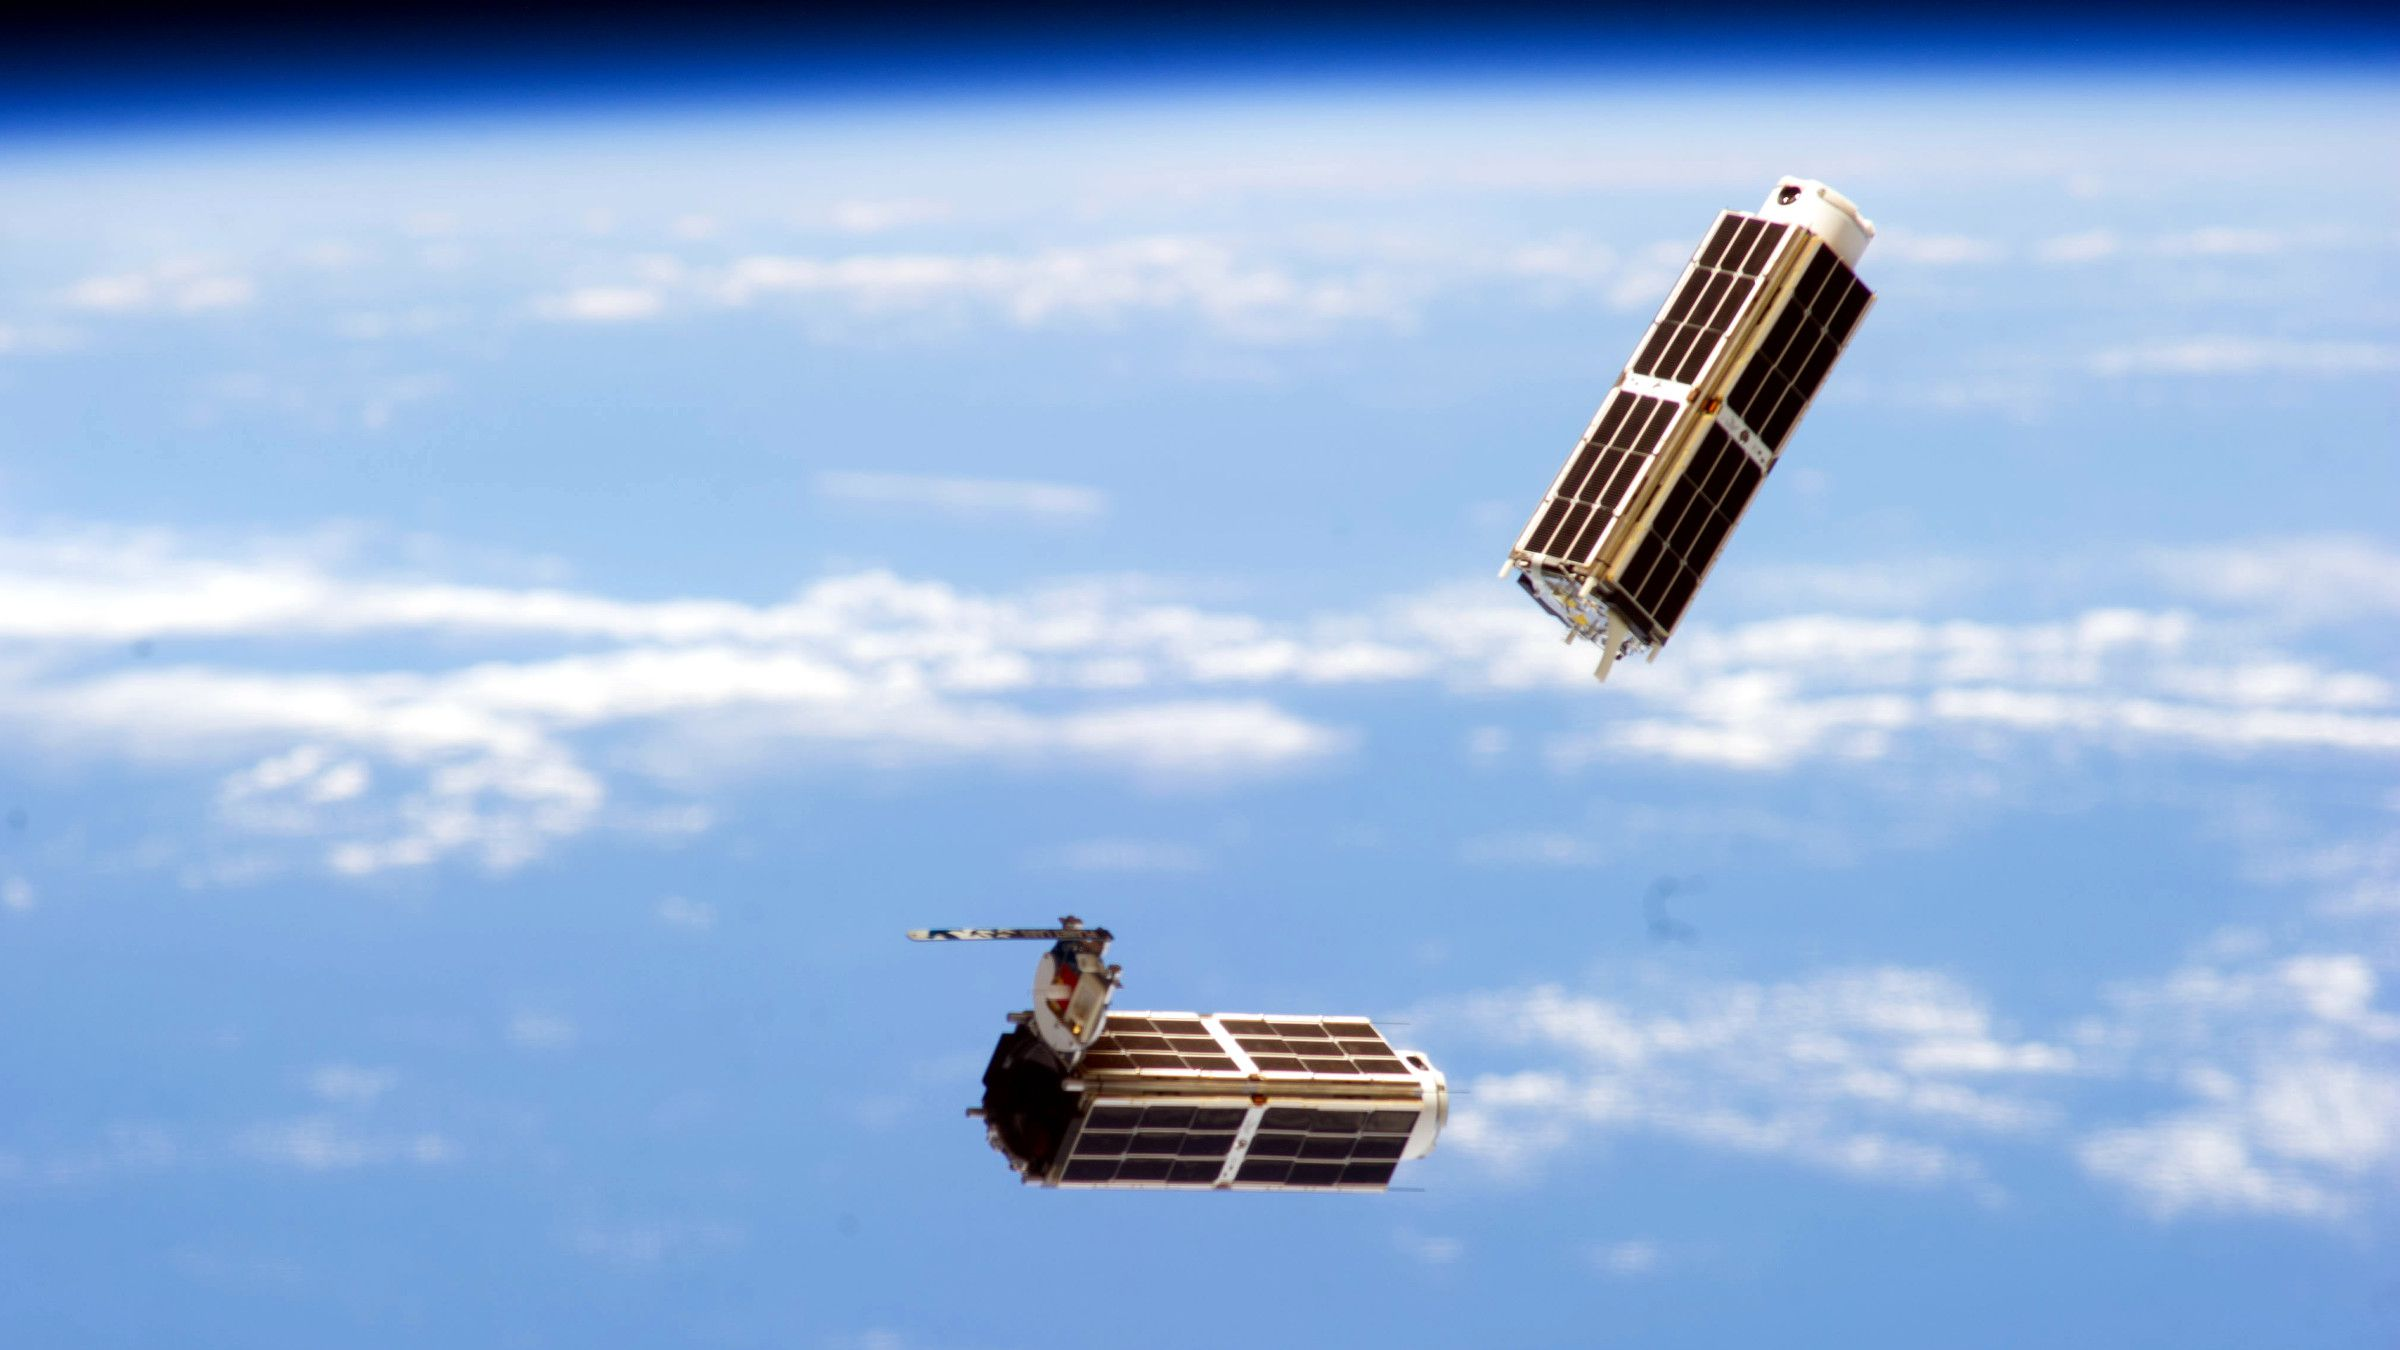 A set of NanoRacks CubeSats is photographed by an Expedition 38 crew member after the deployment by the Small Satellite Orbital Deployer (SSOD). The CubeSats program contains a variety of experiments such as Earth observations and advanced electronics testing.